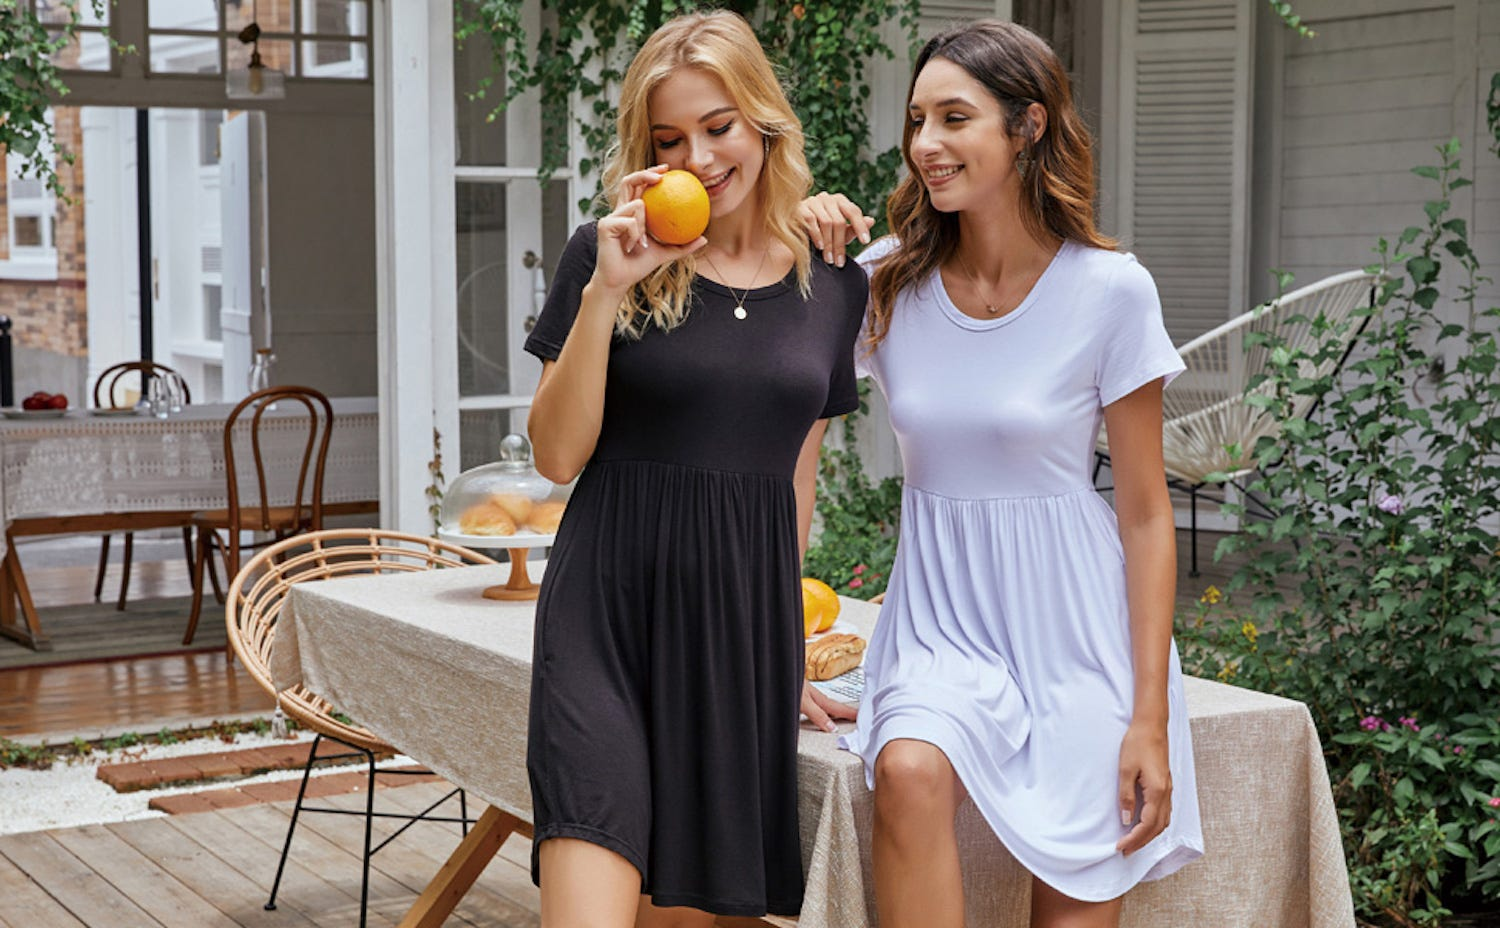 Two women on a patio: one in a black T-shirt dress, the other in a white T-shirt dress